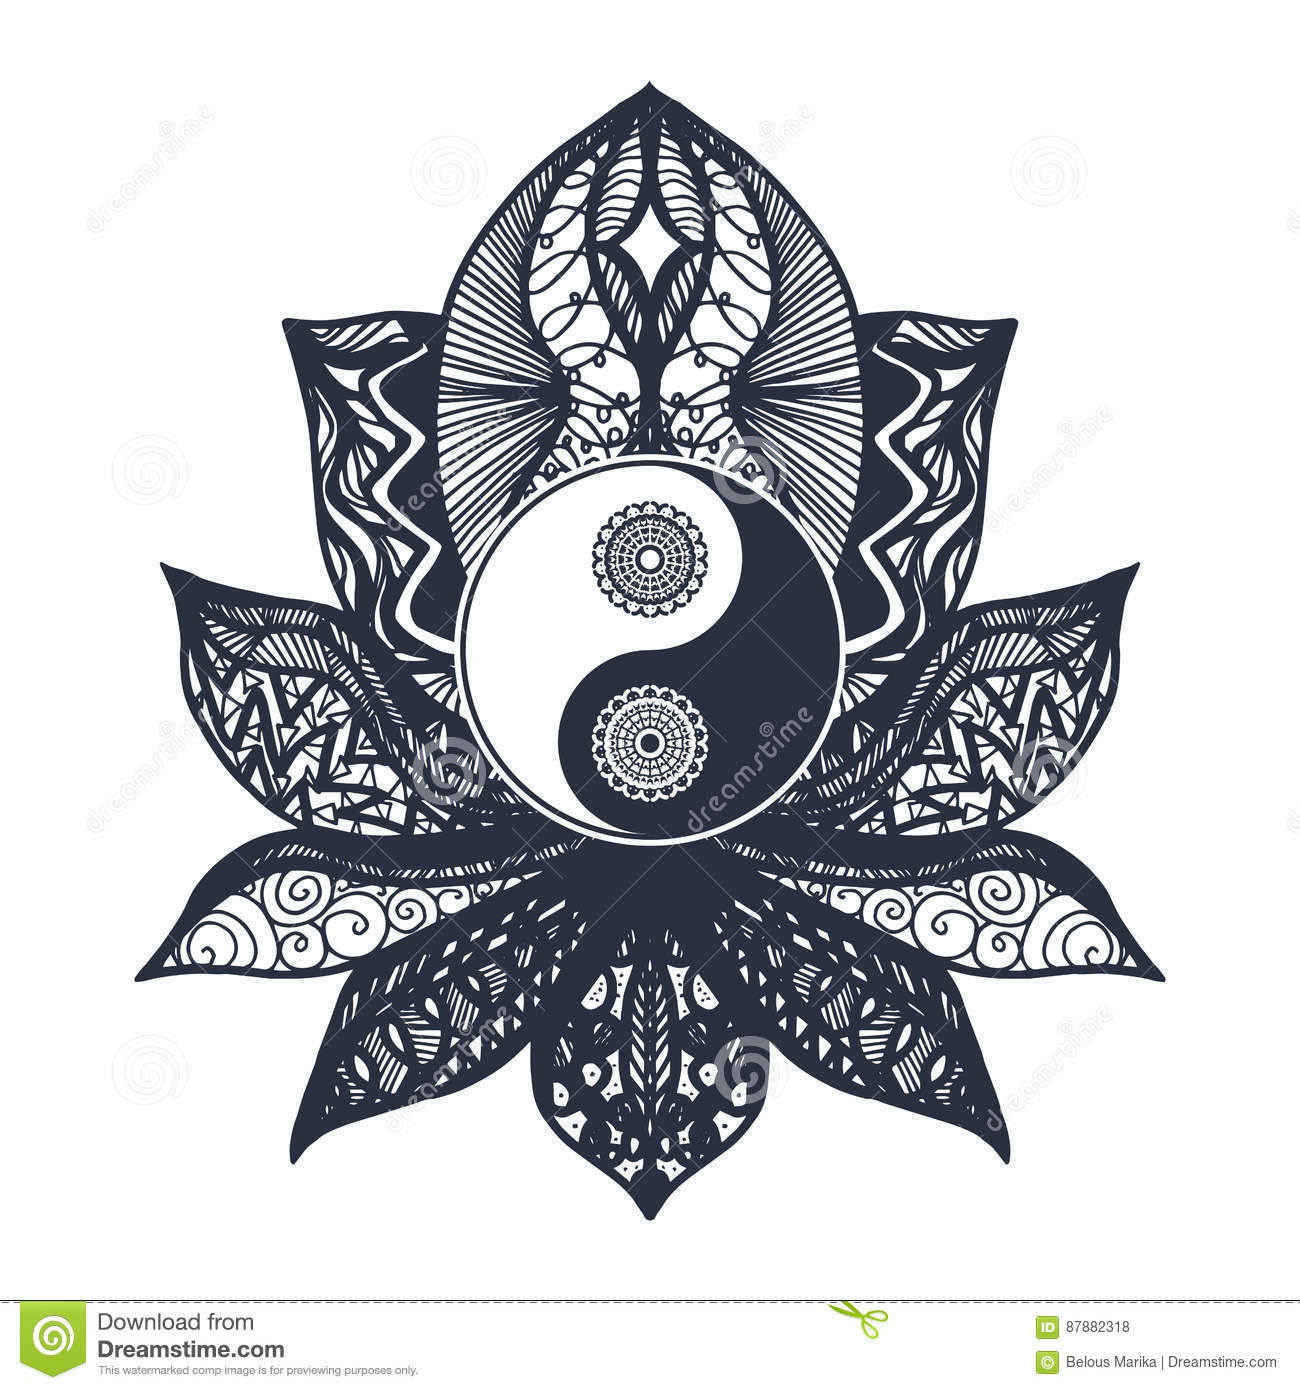 Tao Symbol For Print Tattoo Coloring Bookfabric T Shirt Yoga Henna Cloth In Boho Style Mehndi Occult And Tribal Esoteric Alchemy Sign Vector